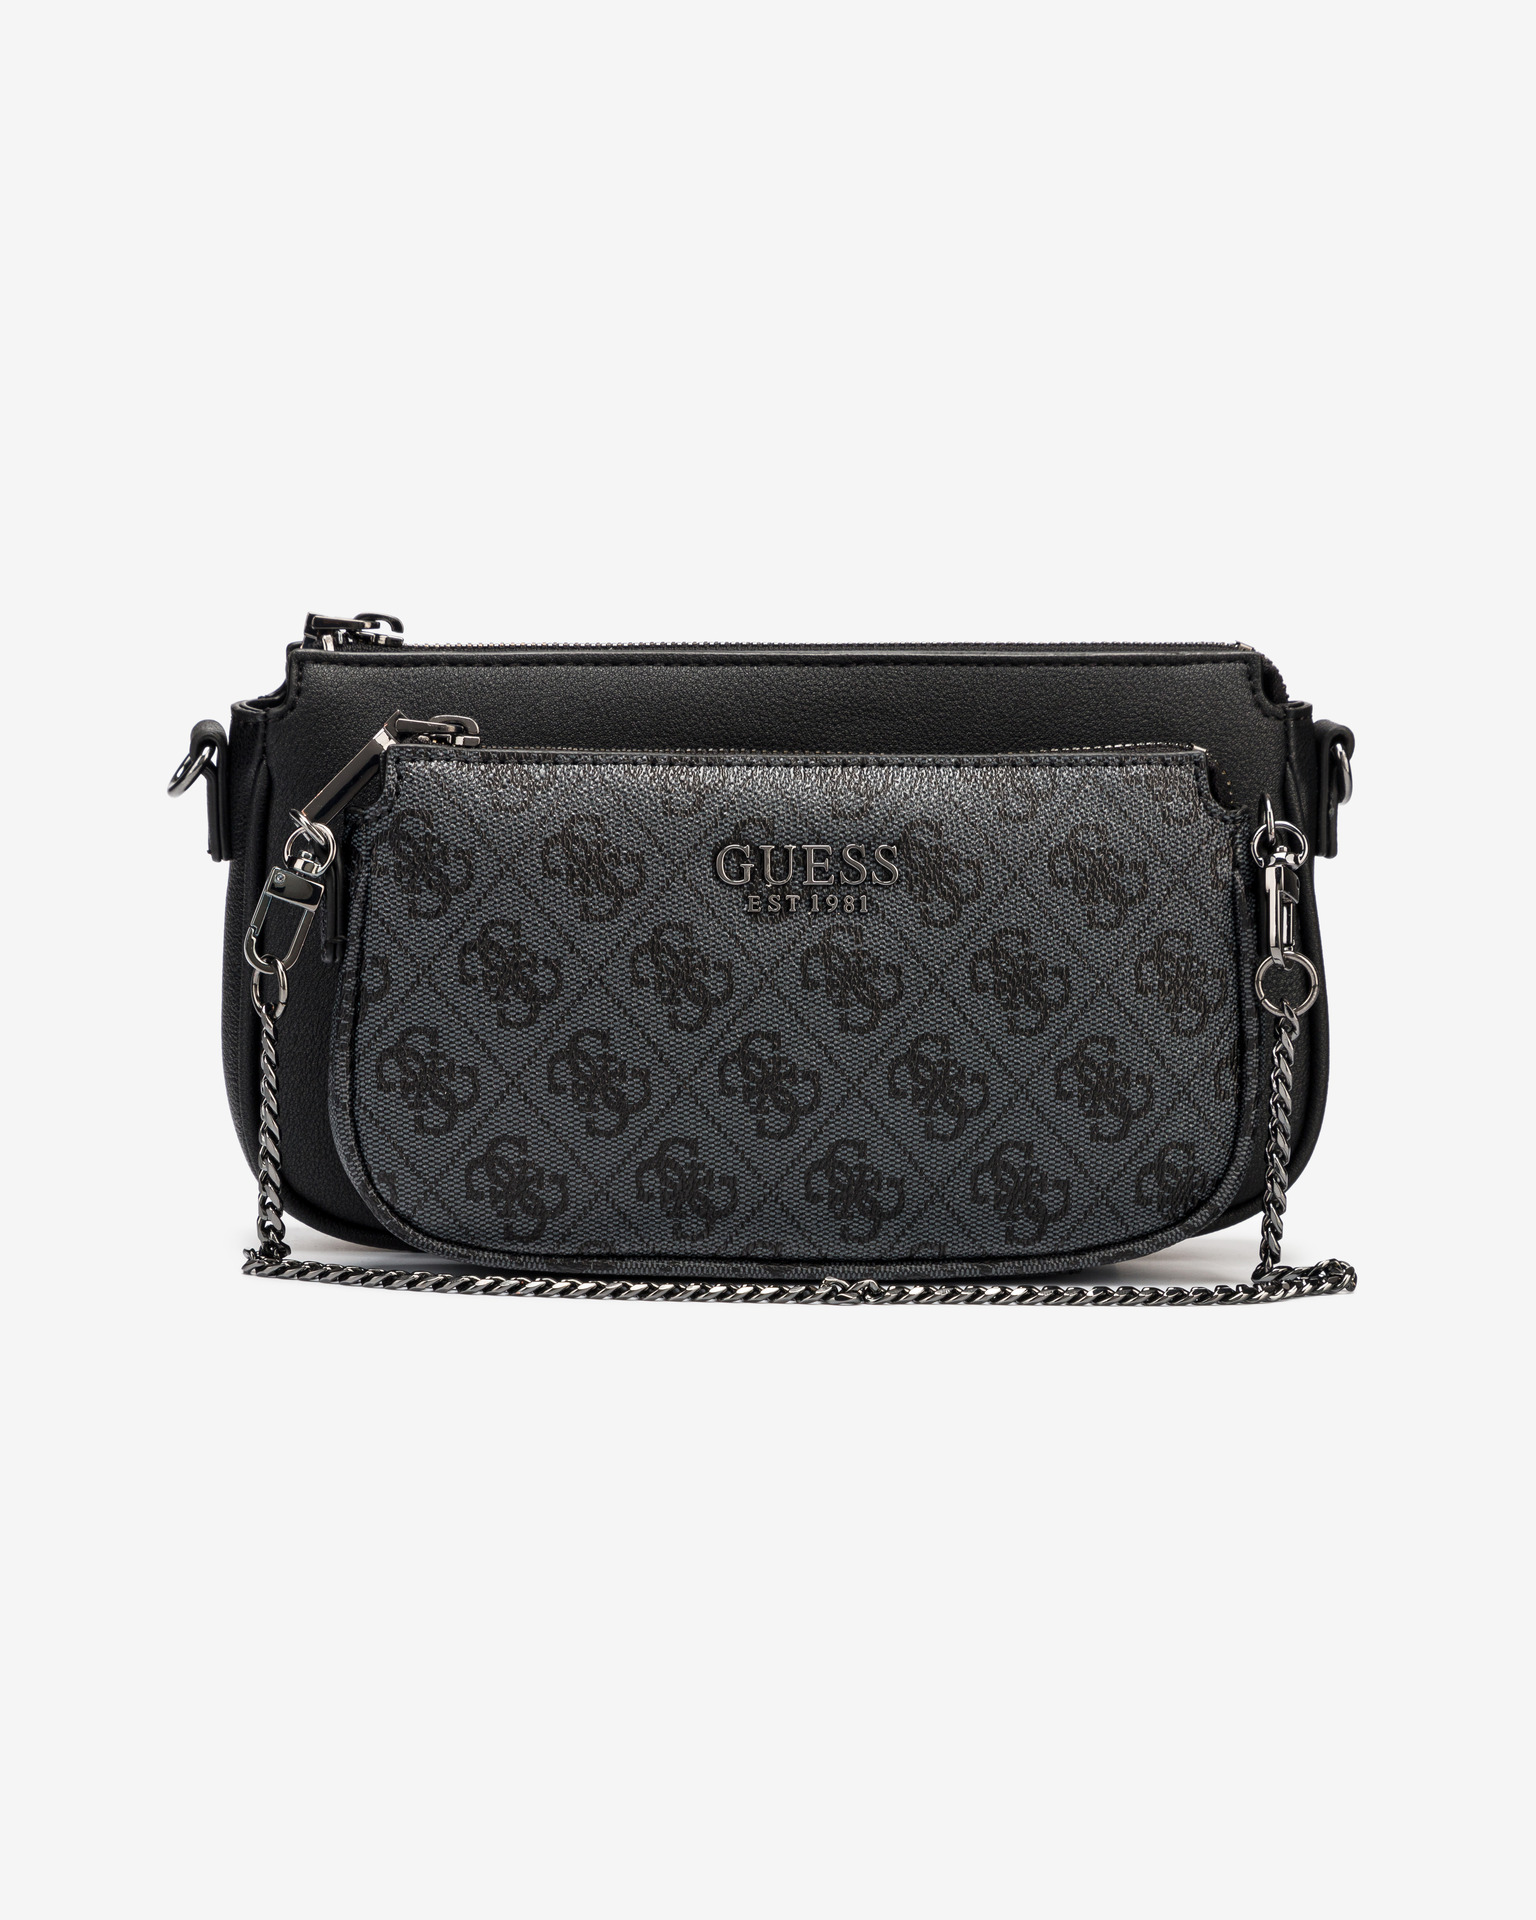 Guess black 2in1 crossbody handbag Mika Double Pouch